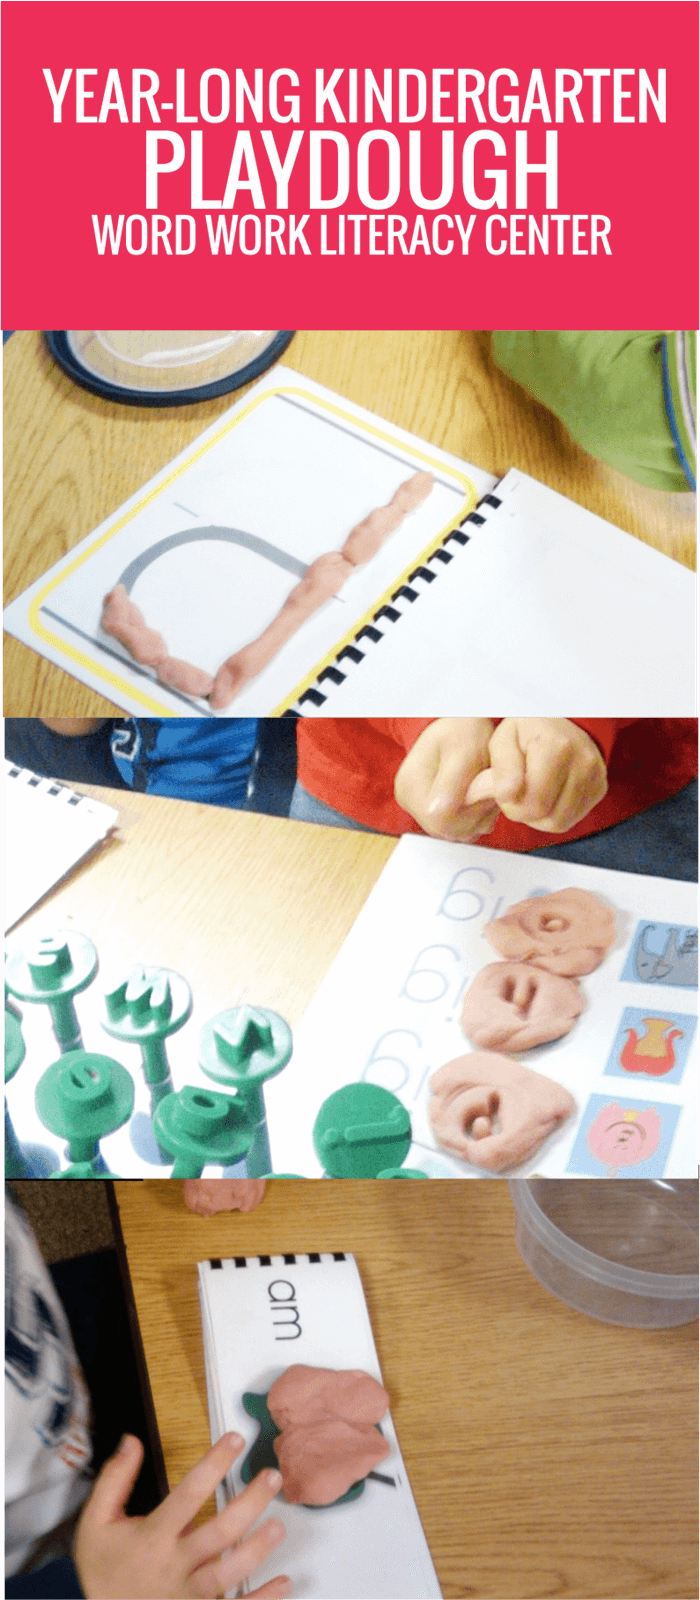 Year Long Playdough Literacy Center for Kindergarten Word Work